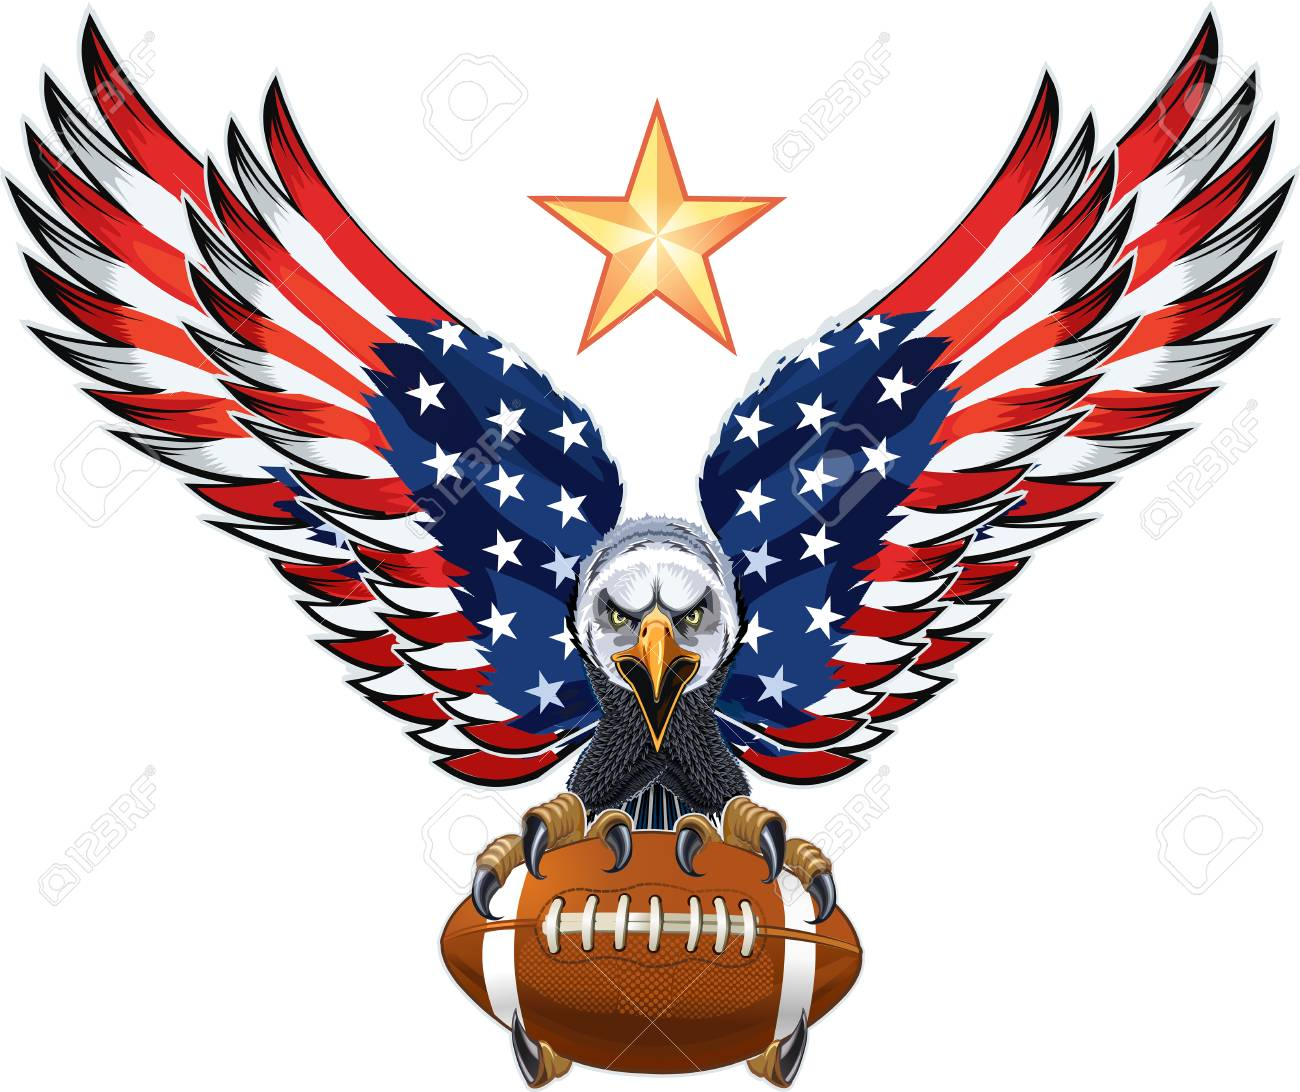 American eagle with USA flags and American Football - 120564847